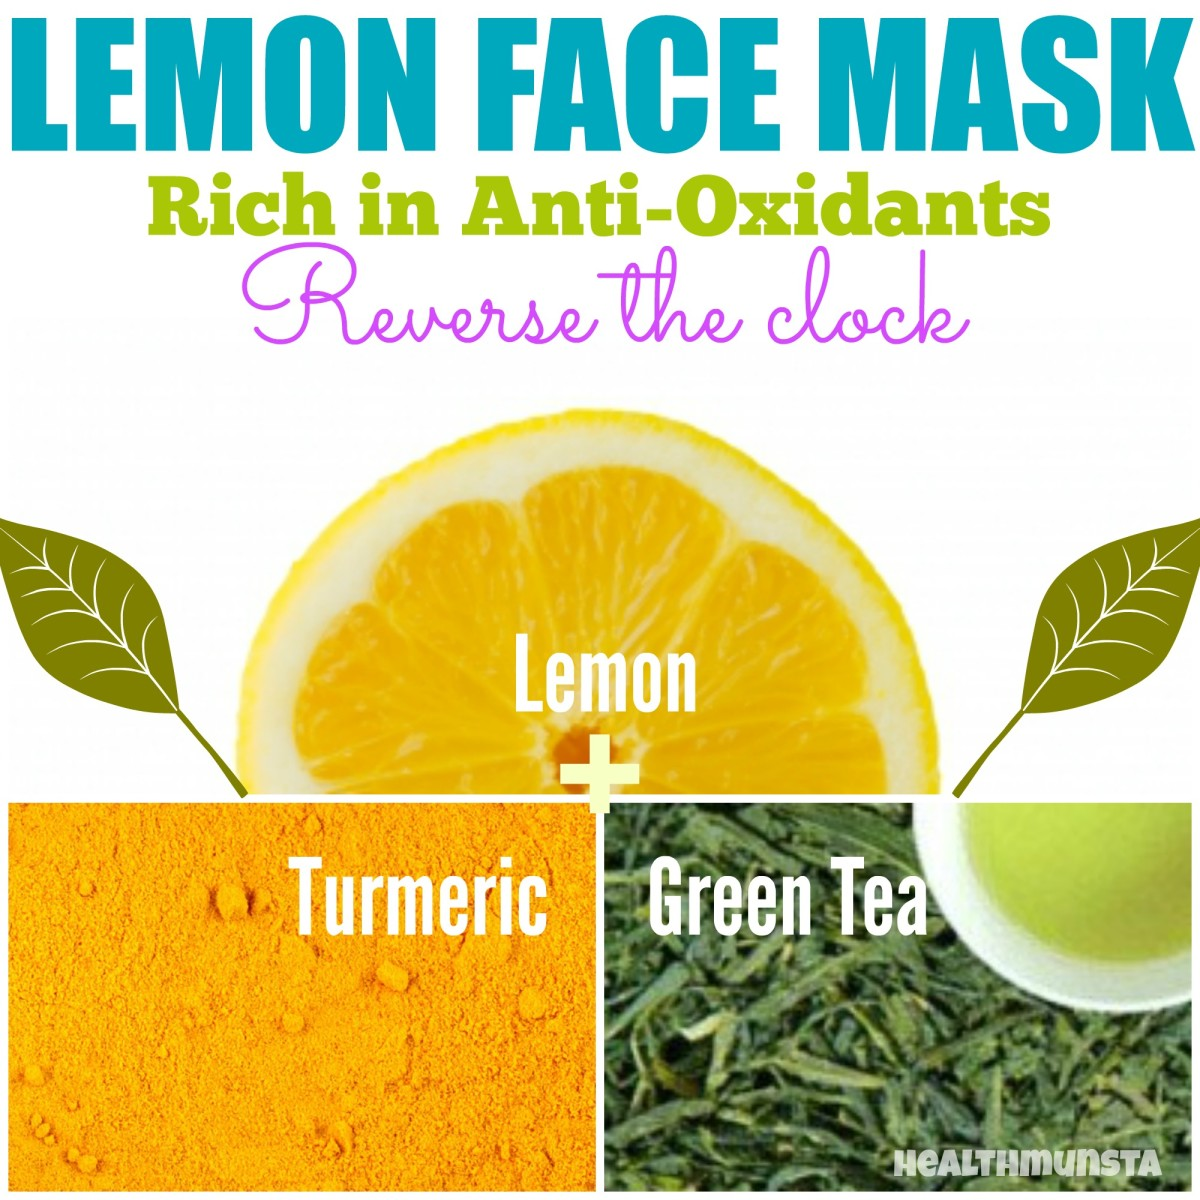 Want to keep wrinkles off bay? Try this refreshing lemon face mask diluted with green tea and a pinch of turmeric. This combination lightens skin pigmentation as well.